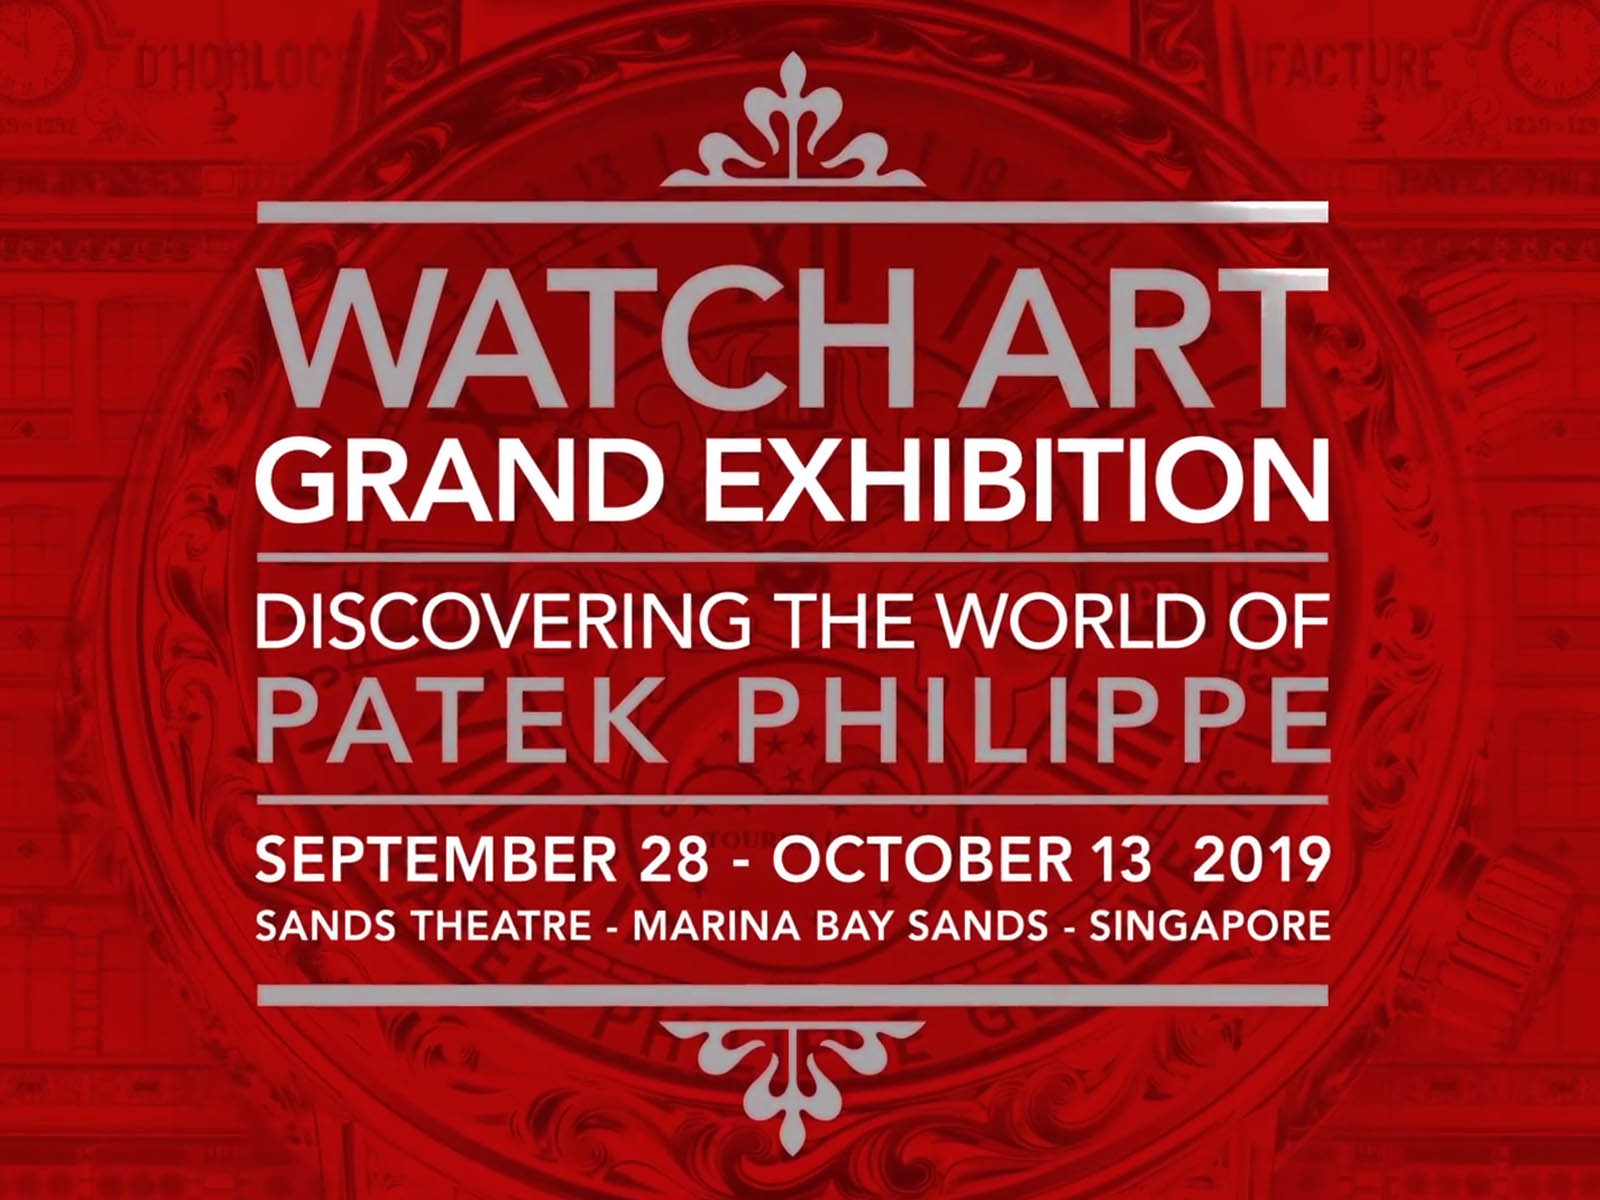 patek-philippe-grand-exhibition-singapur-2019-2.jpg